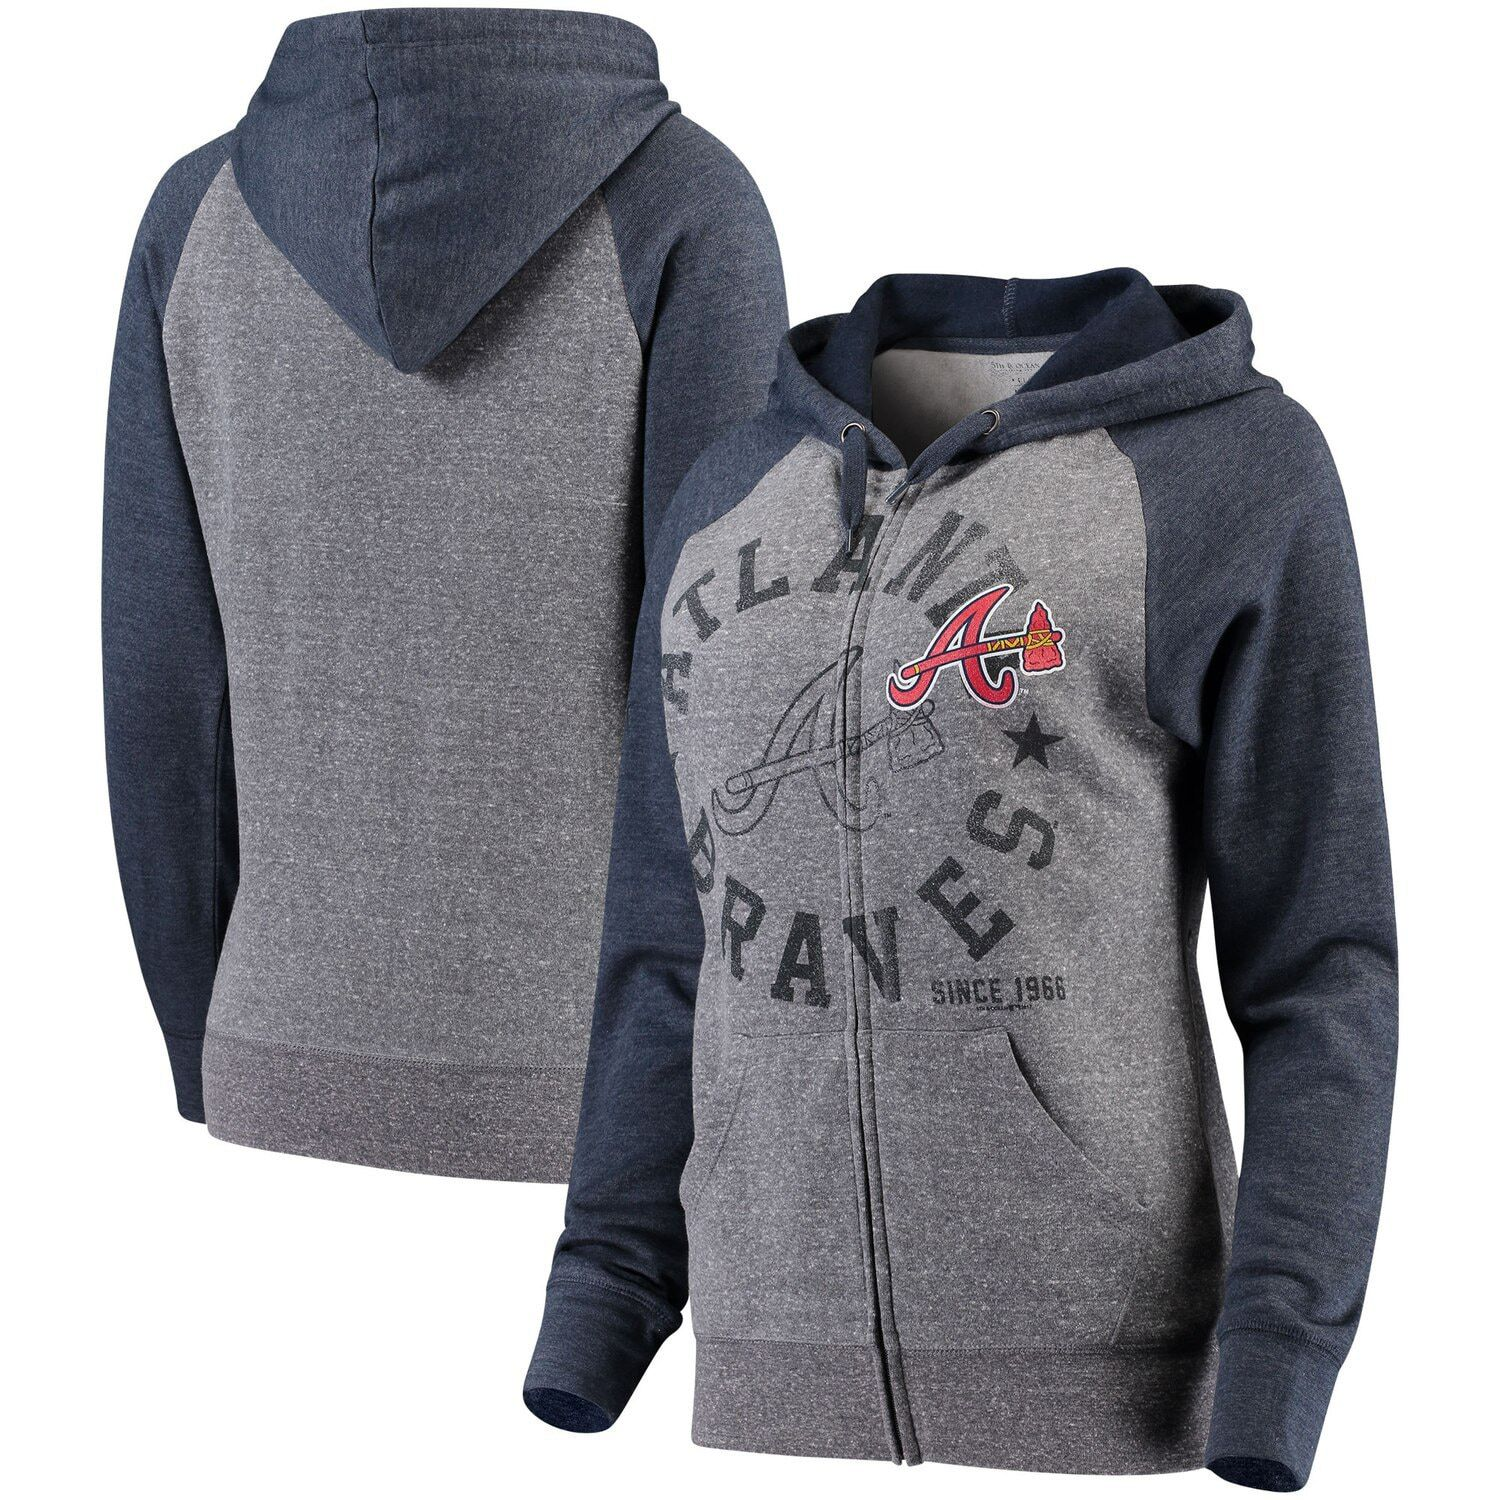 Women S 5th Ocean By New Era Heathered Gray Navy Atlanta Braves Tri Blend Raglan Fleece Full Zip Hoodie Affiliate Gr Atlanta Braves Full Zip Hoodie Hoodies